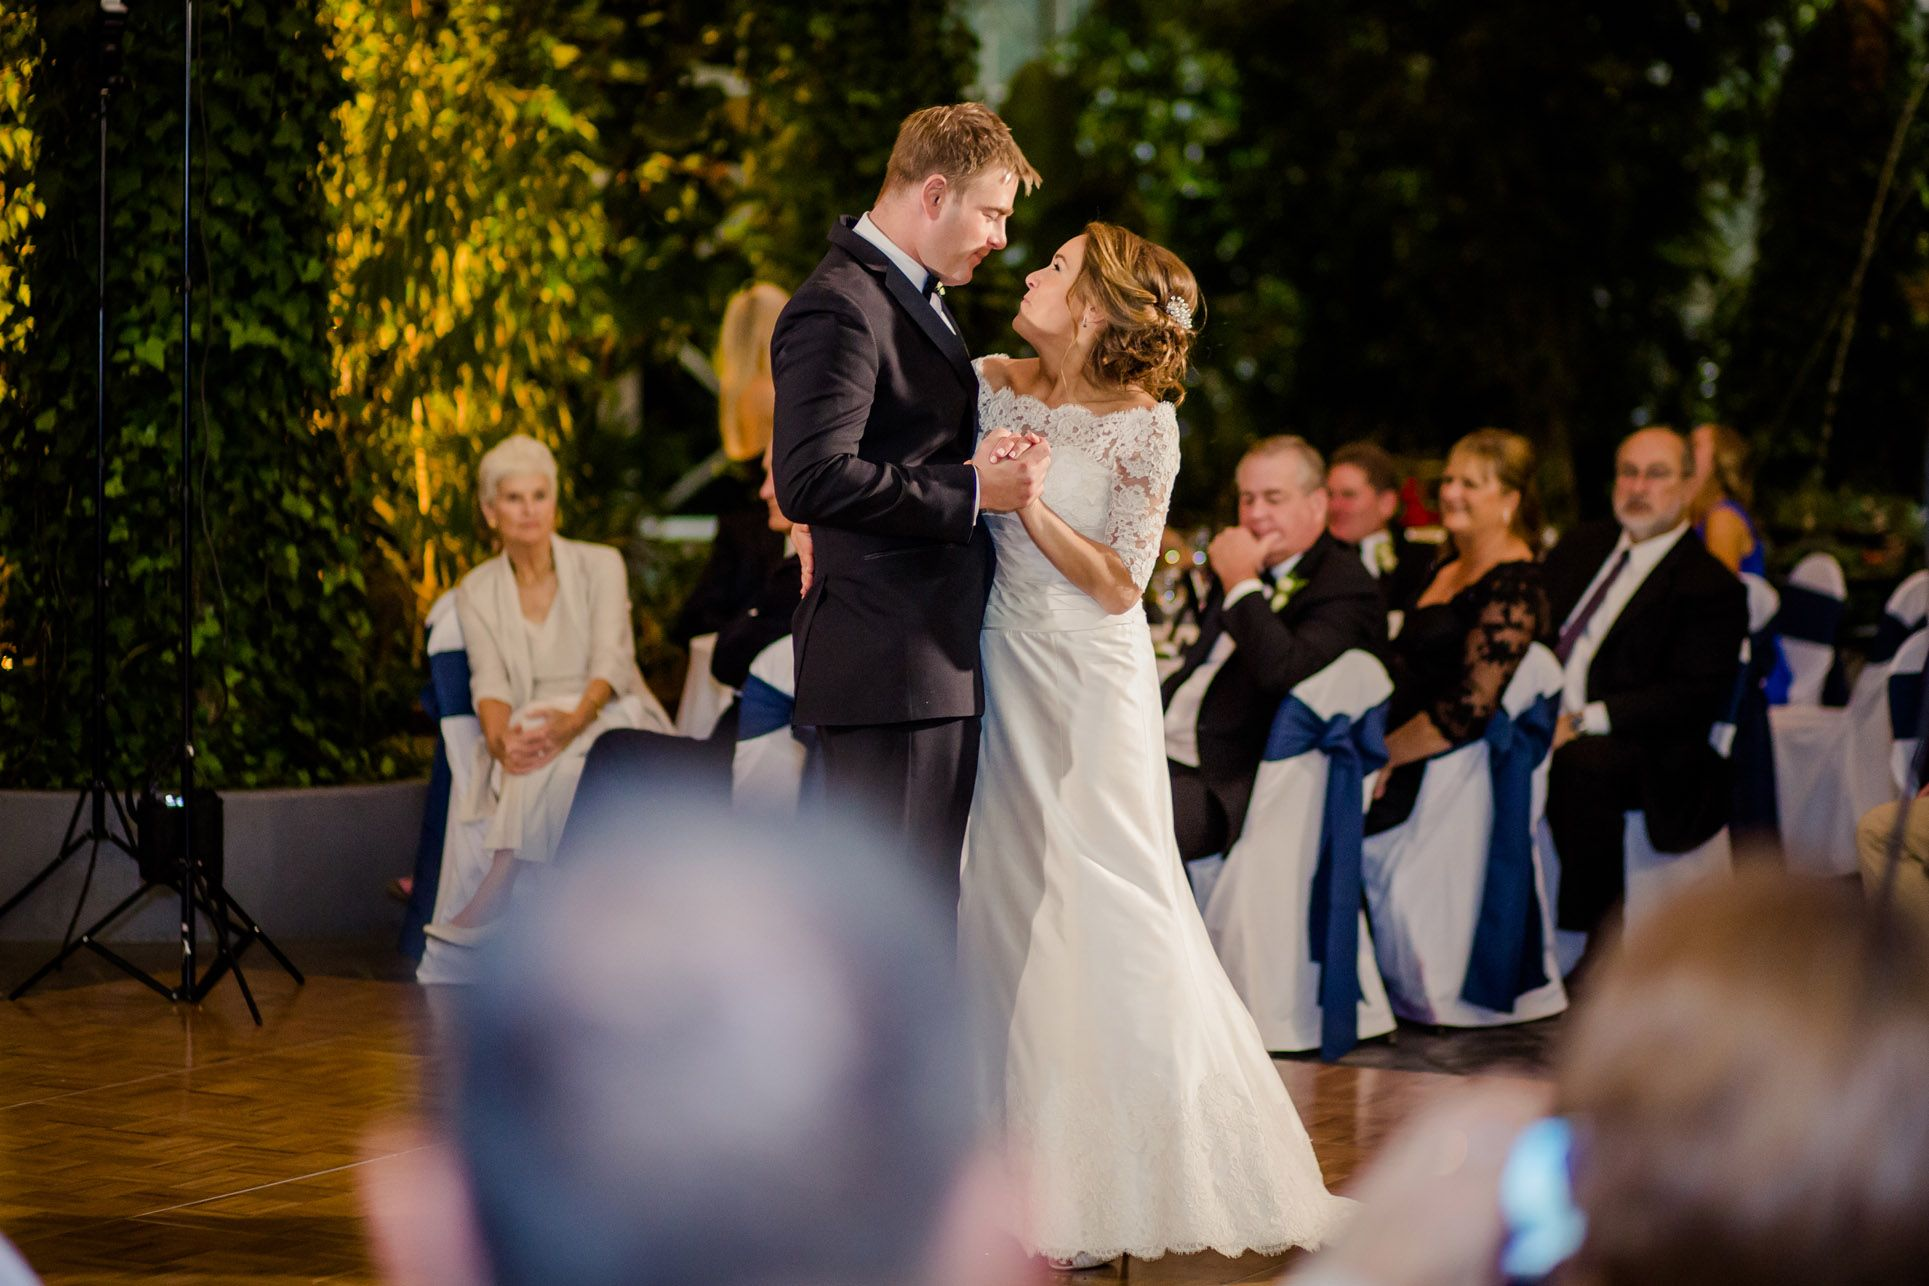 Rush Productions Is An Experienced Full Service Wedding Photography Videography Studio